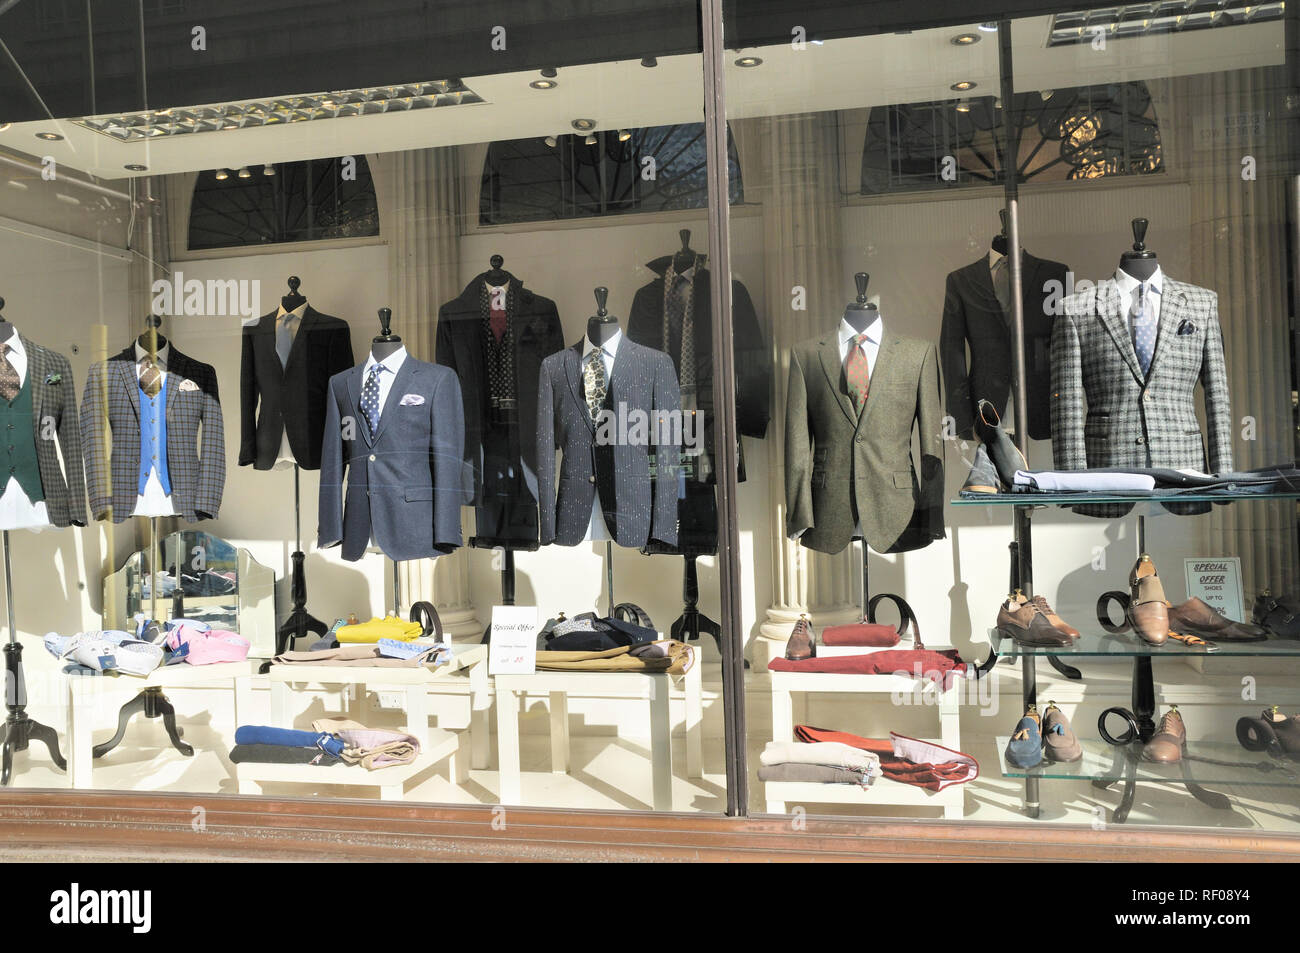 Stylish menswear suits and jacket combinations in shop window display, London, England, UK - Stock Image